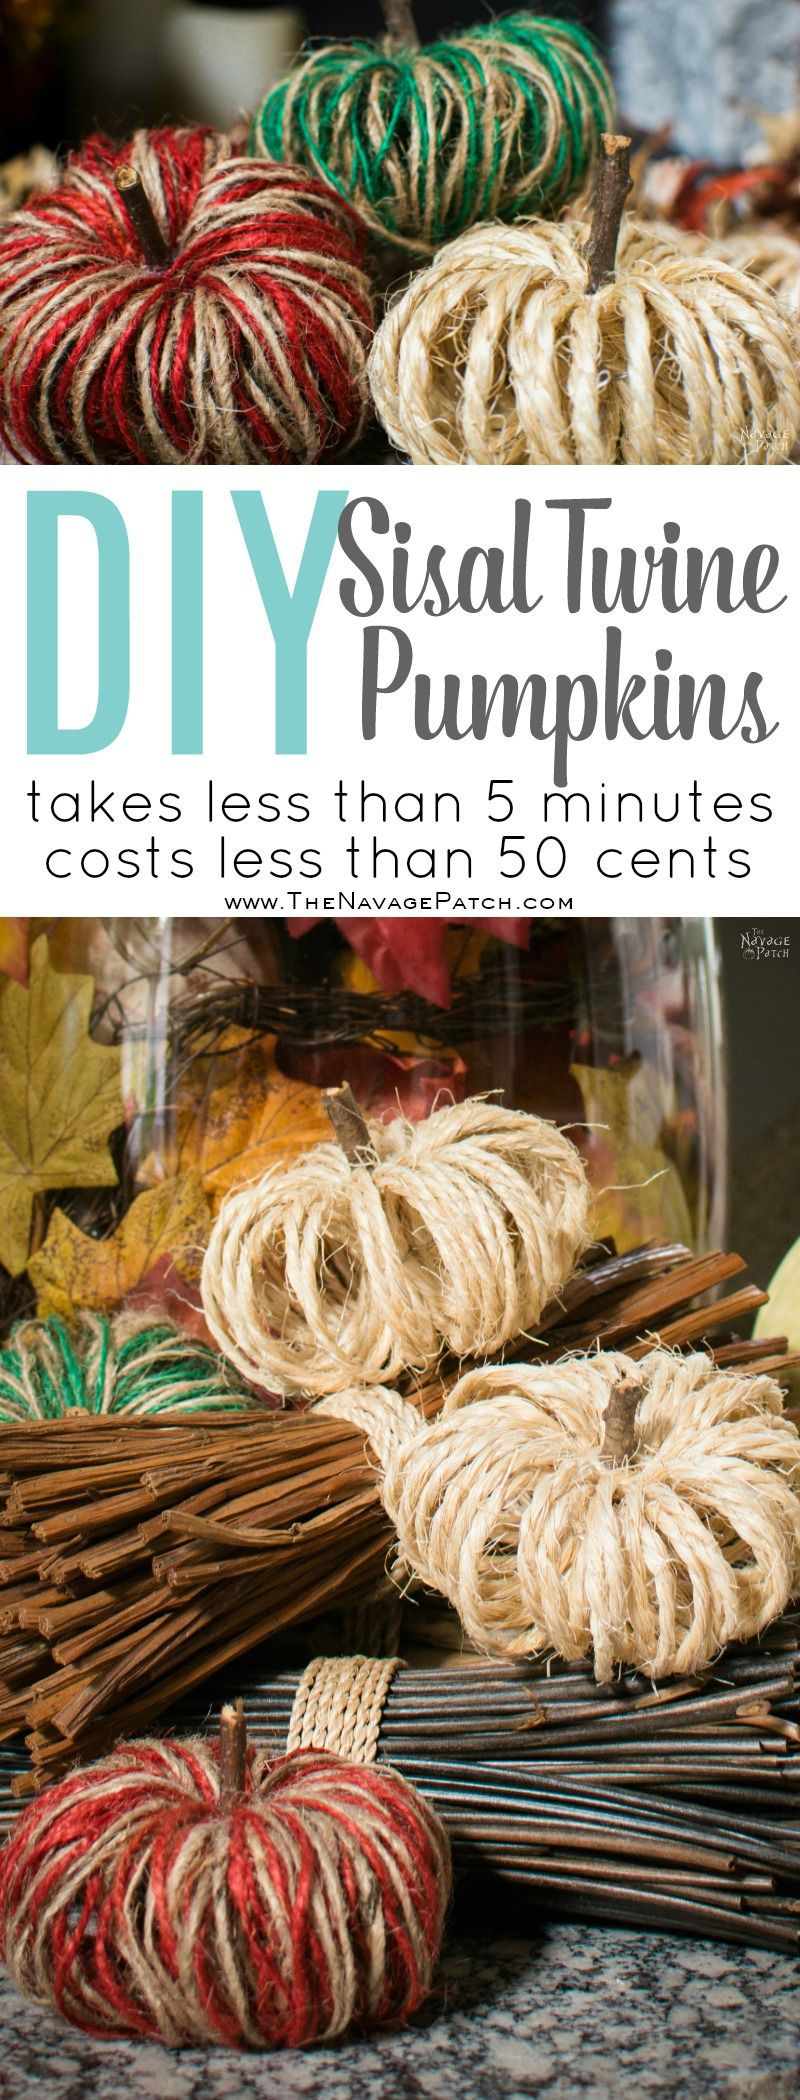 DIY Sisal Twine Pumpkins | How to make dual colored twine pumpkins | Easy and budget friendly DIY fall decoration | Dollar store